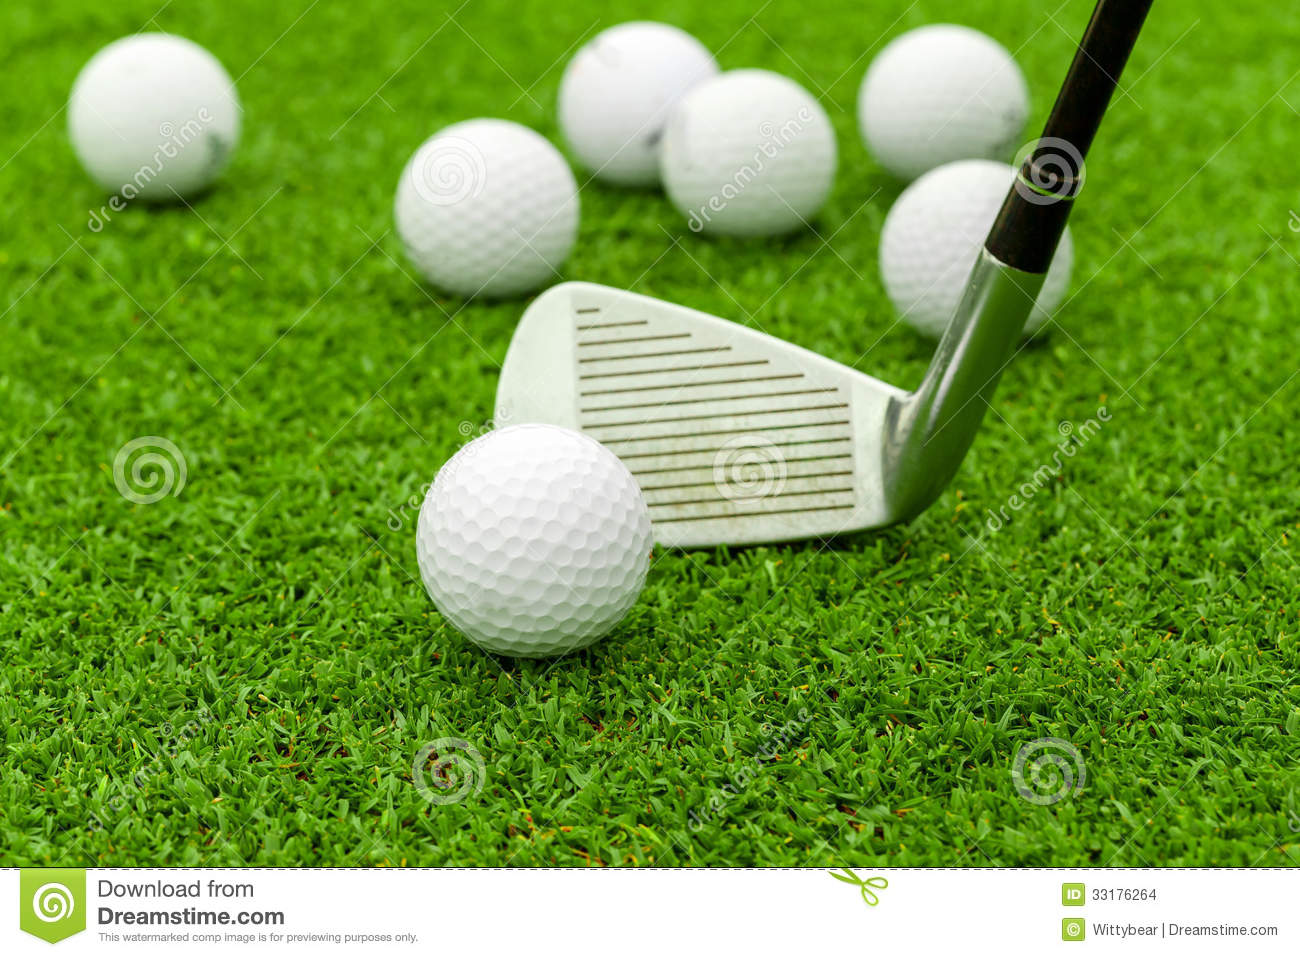 Golf ball on tee in front of driver on green course